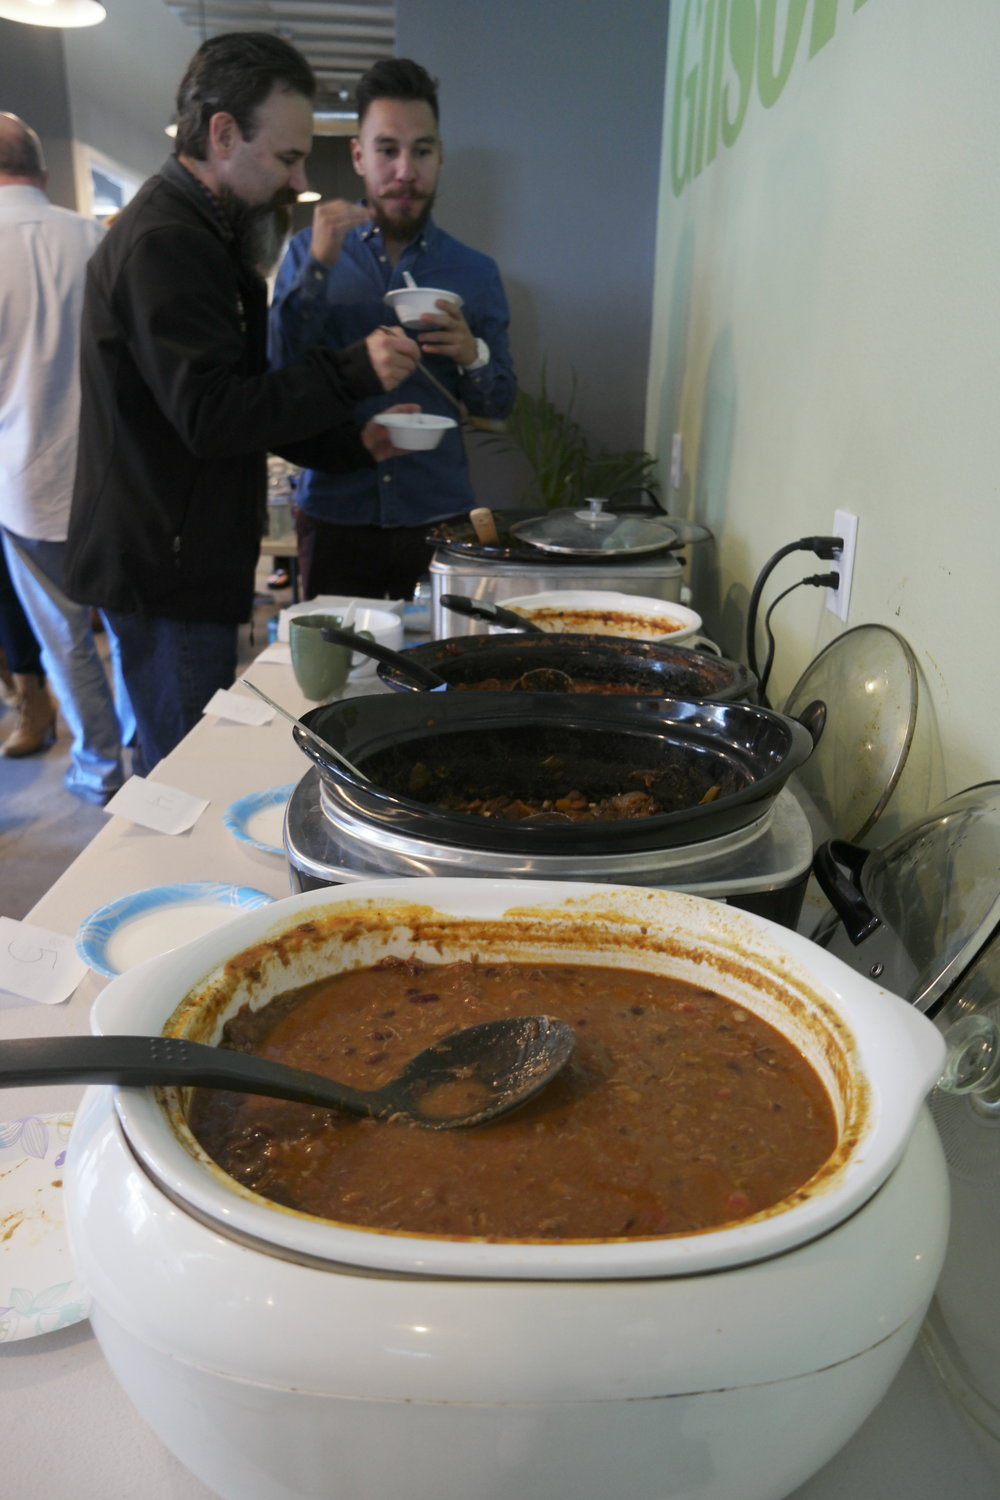 Managing Attorney Reed Heustis, Jr. and Department Head Alberto Flores sample some of the chili.